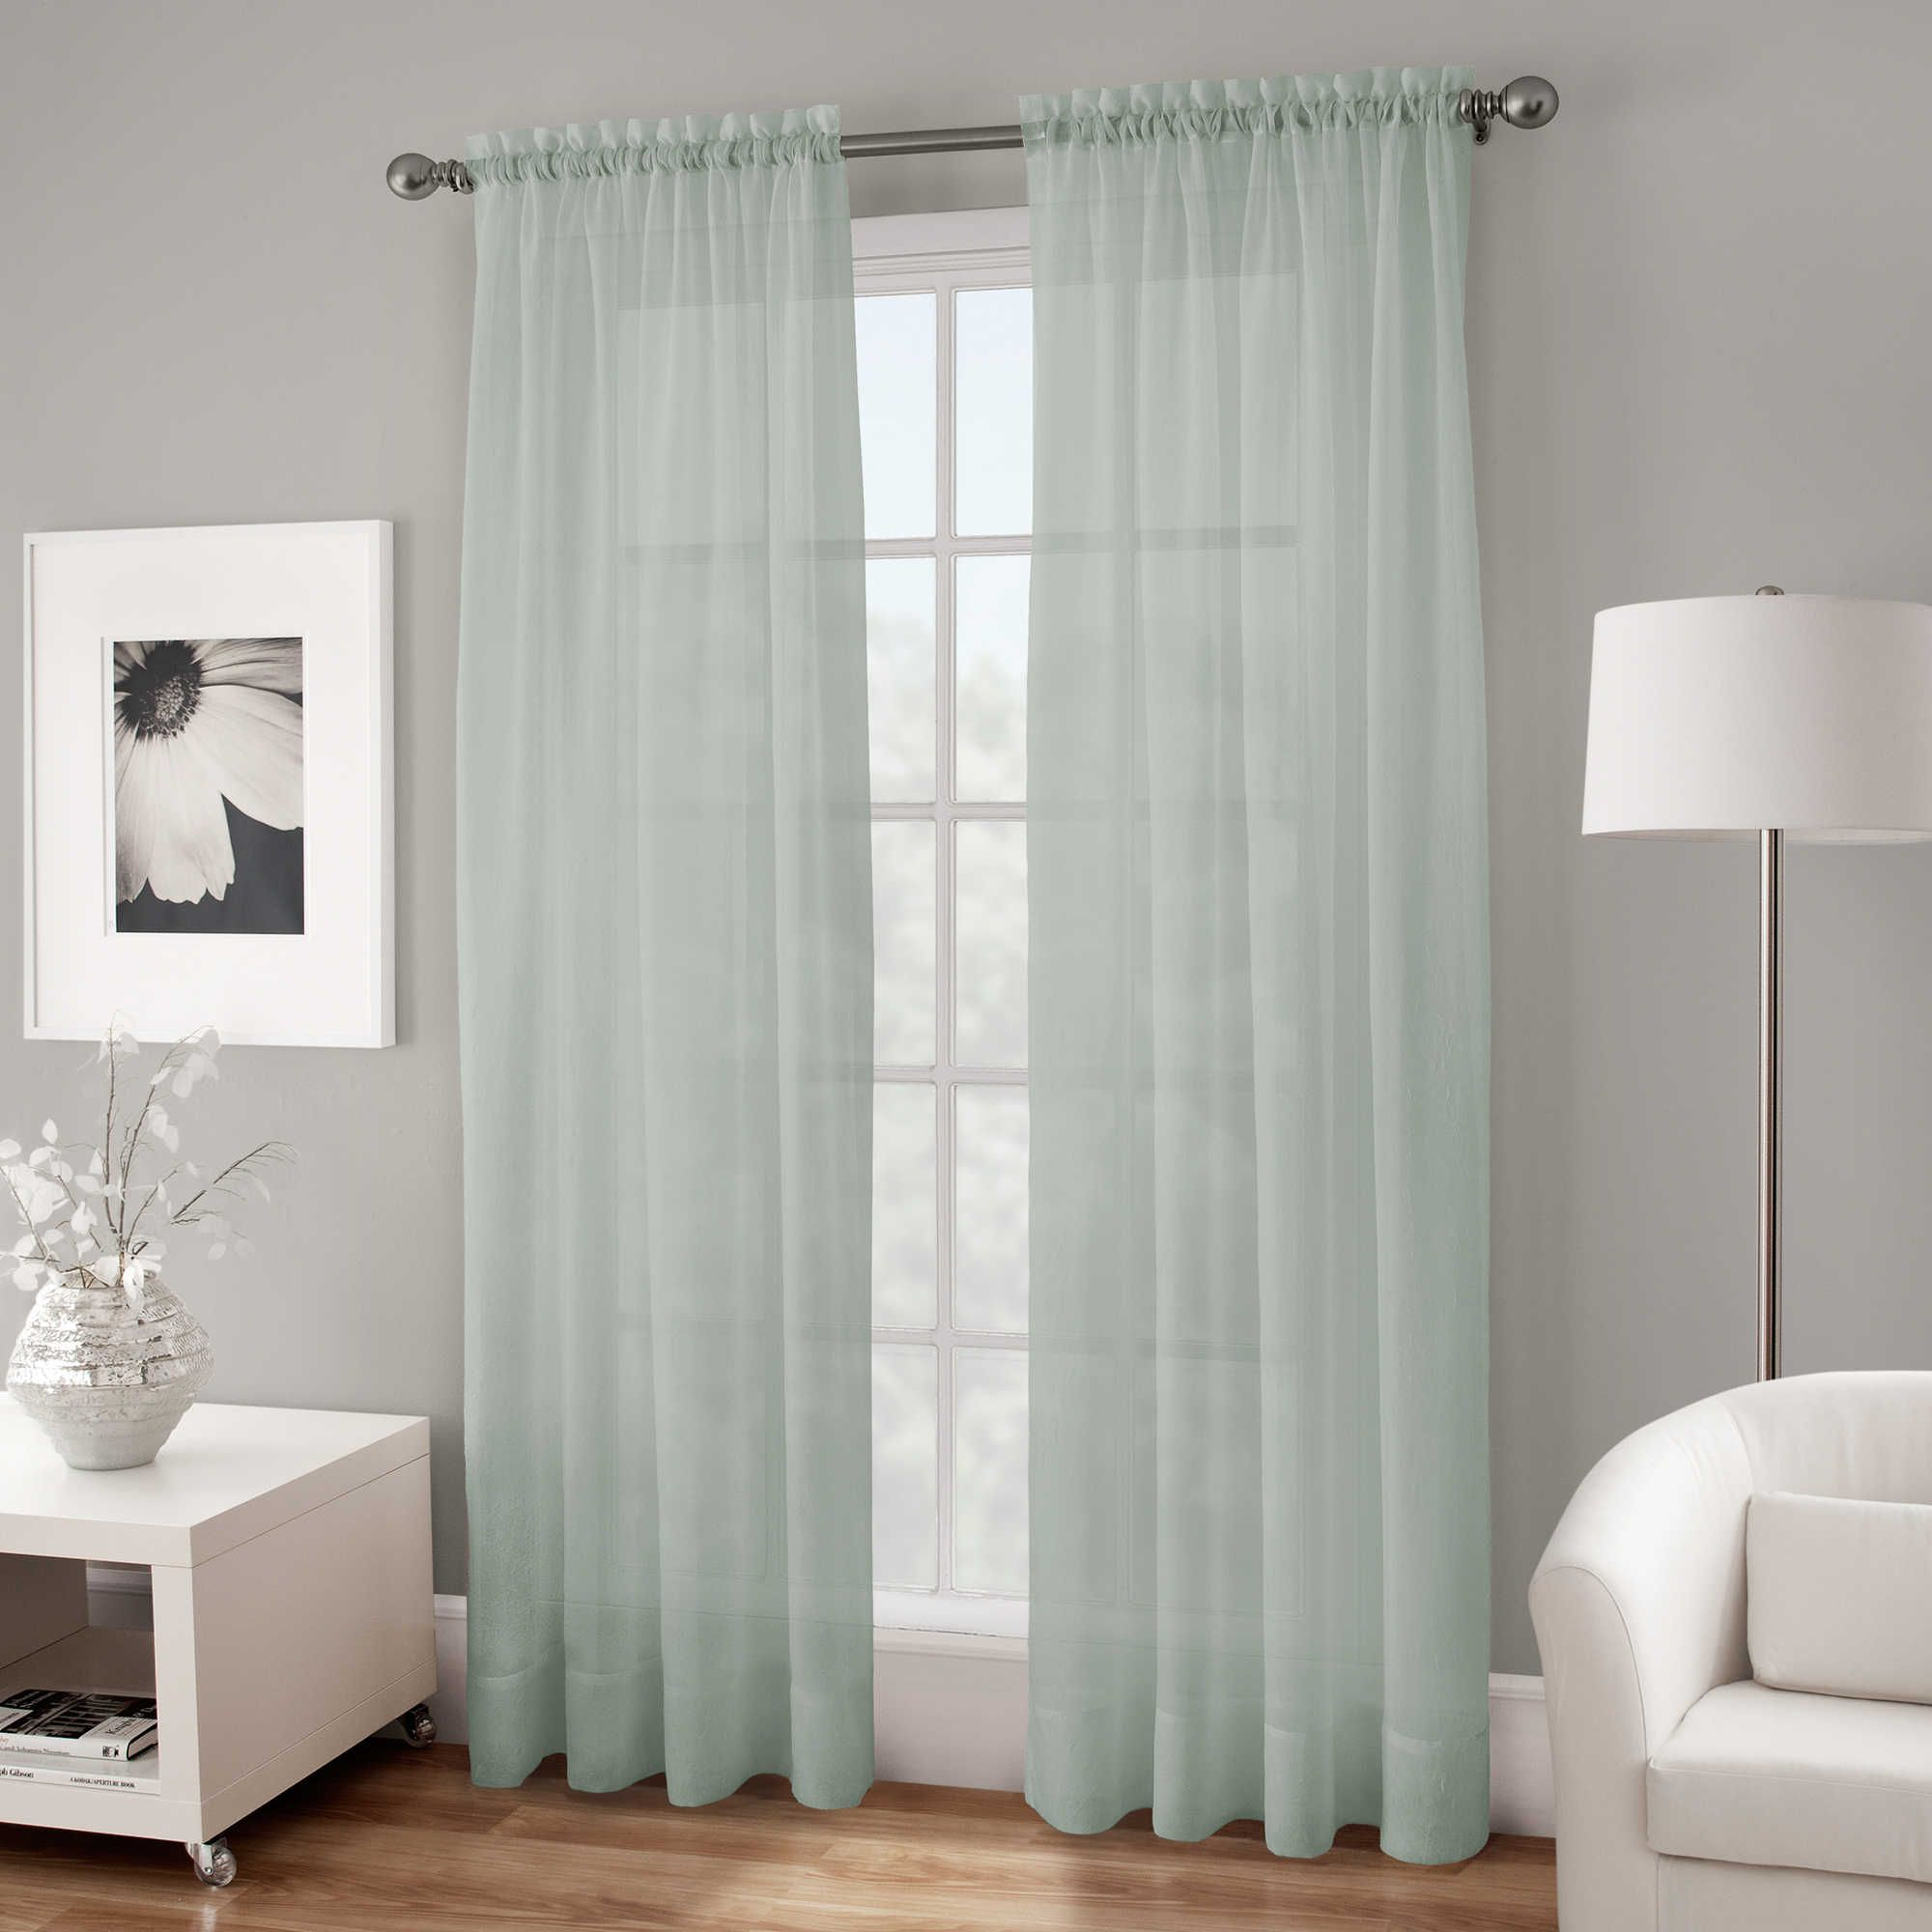 Sheer blue window curtains - Crushed Voile Sheer 144 Inch Rod Pocket Window Curtain Panel In Spa Blue